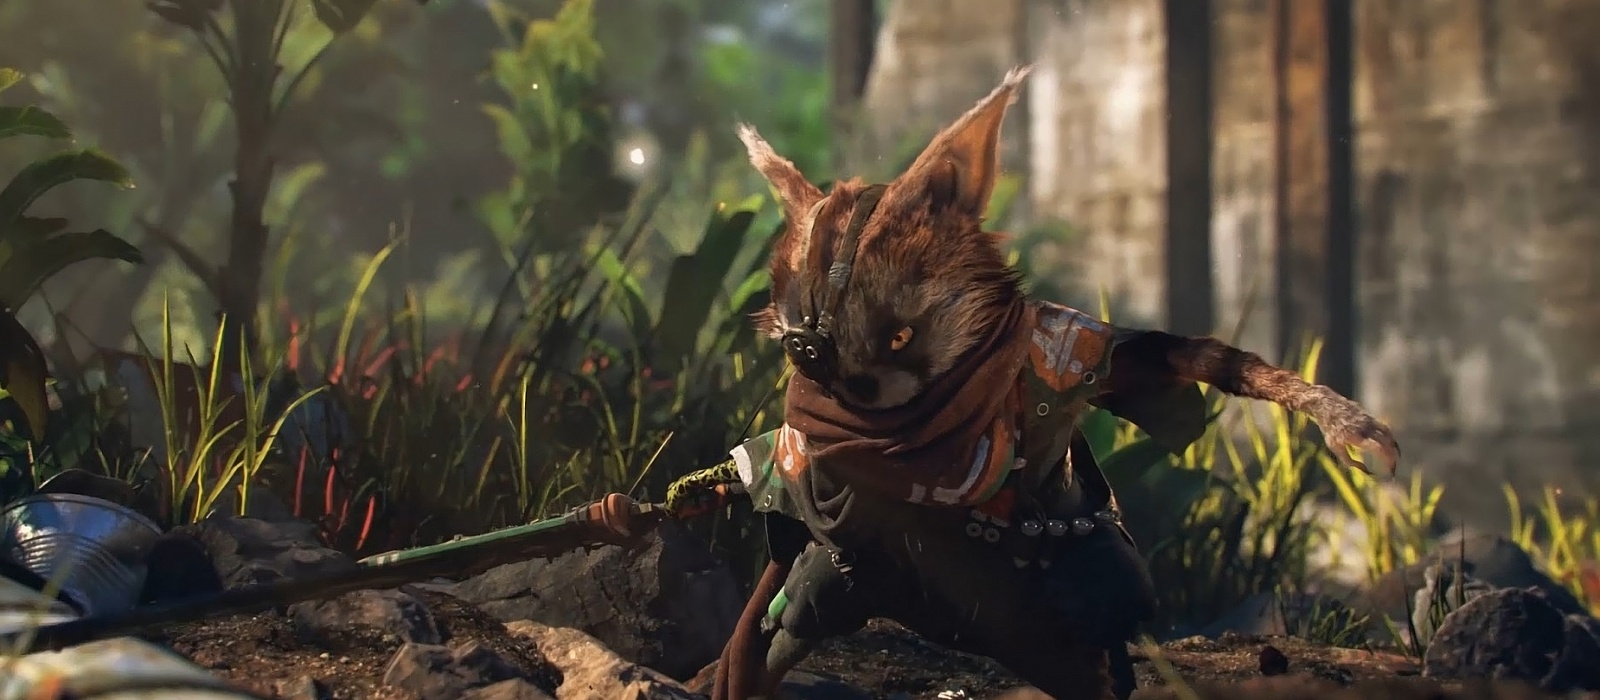 Will Biomutant be improved for PS4 Pro, PS5, Xbox One X and Xbox Series X / S